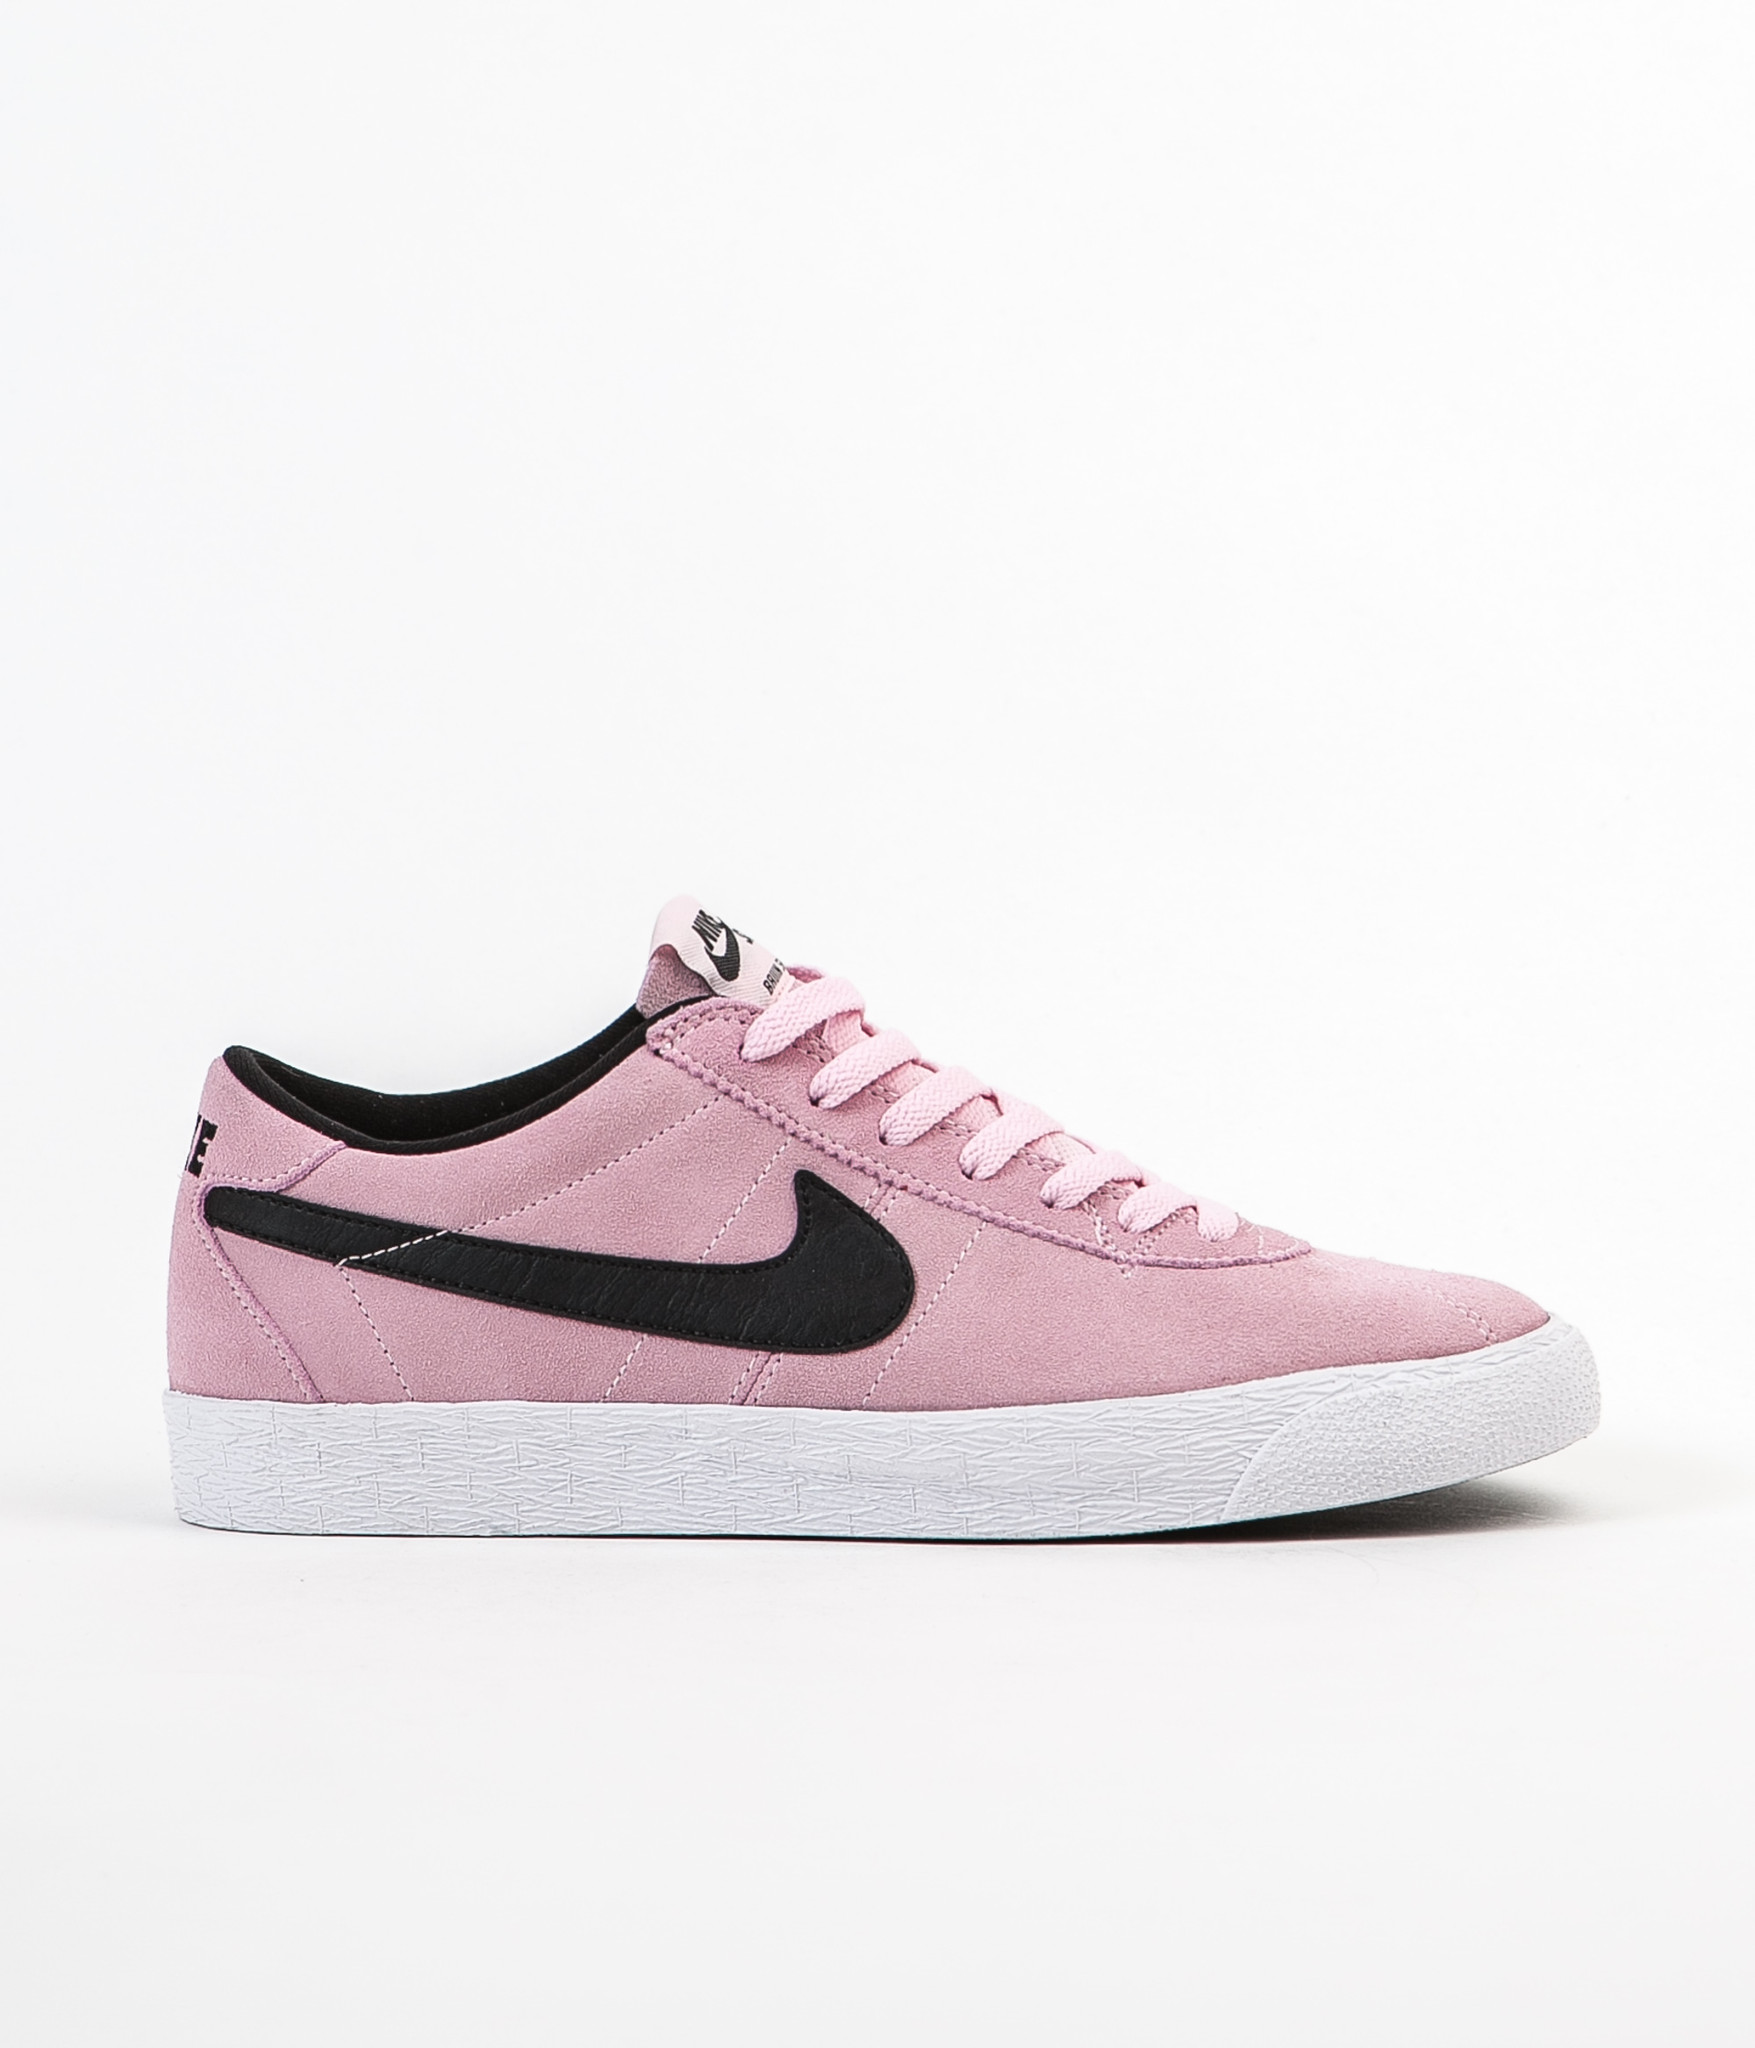 finest selection 731c6 f9167 Very Goods   Nike SB Bruin Premium SE Shoes - Prism Pink   Black - White    Flatspot